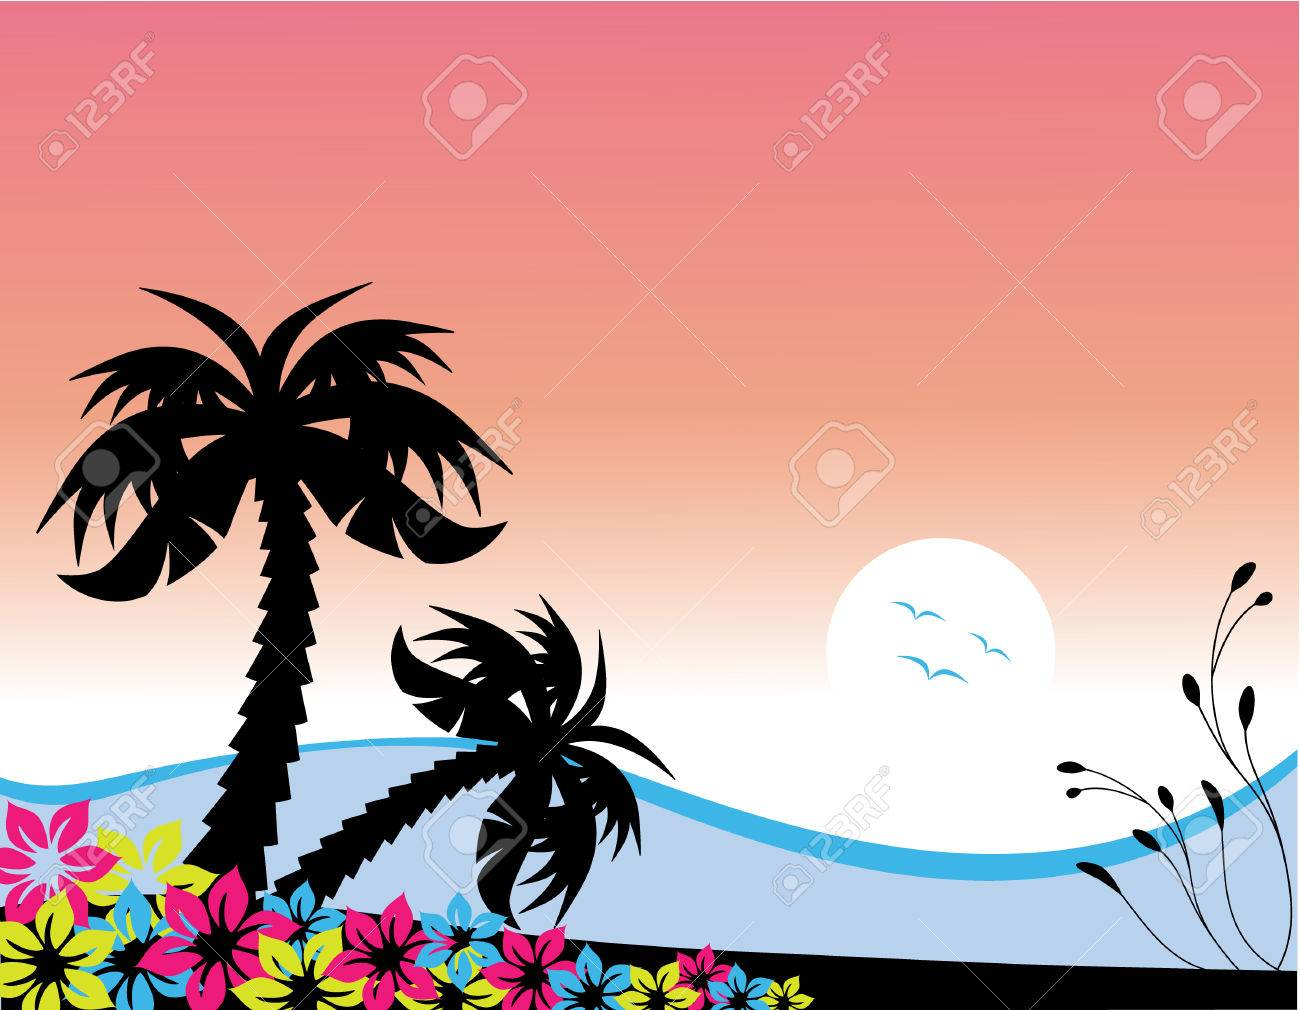 Vector illustration of palm trees at the beach at sunset Stock Vector - 4749232